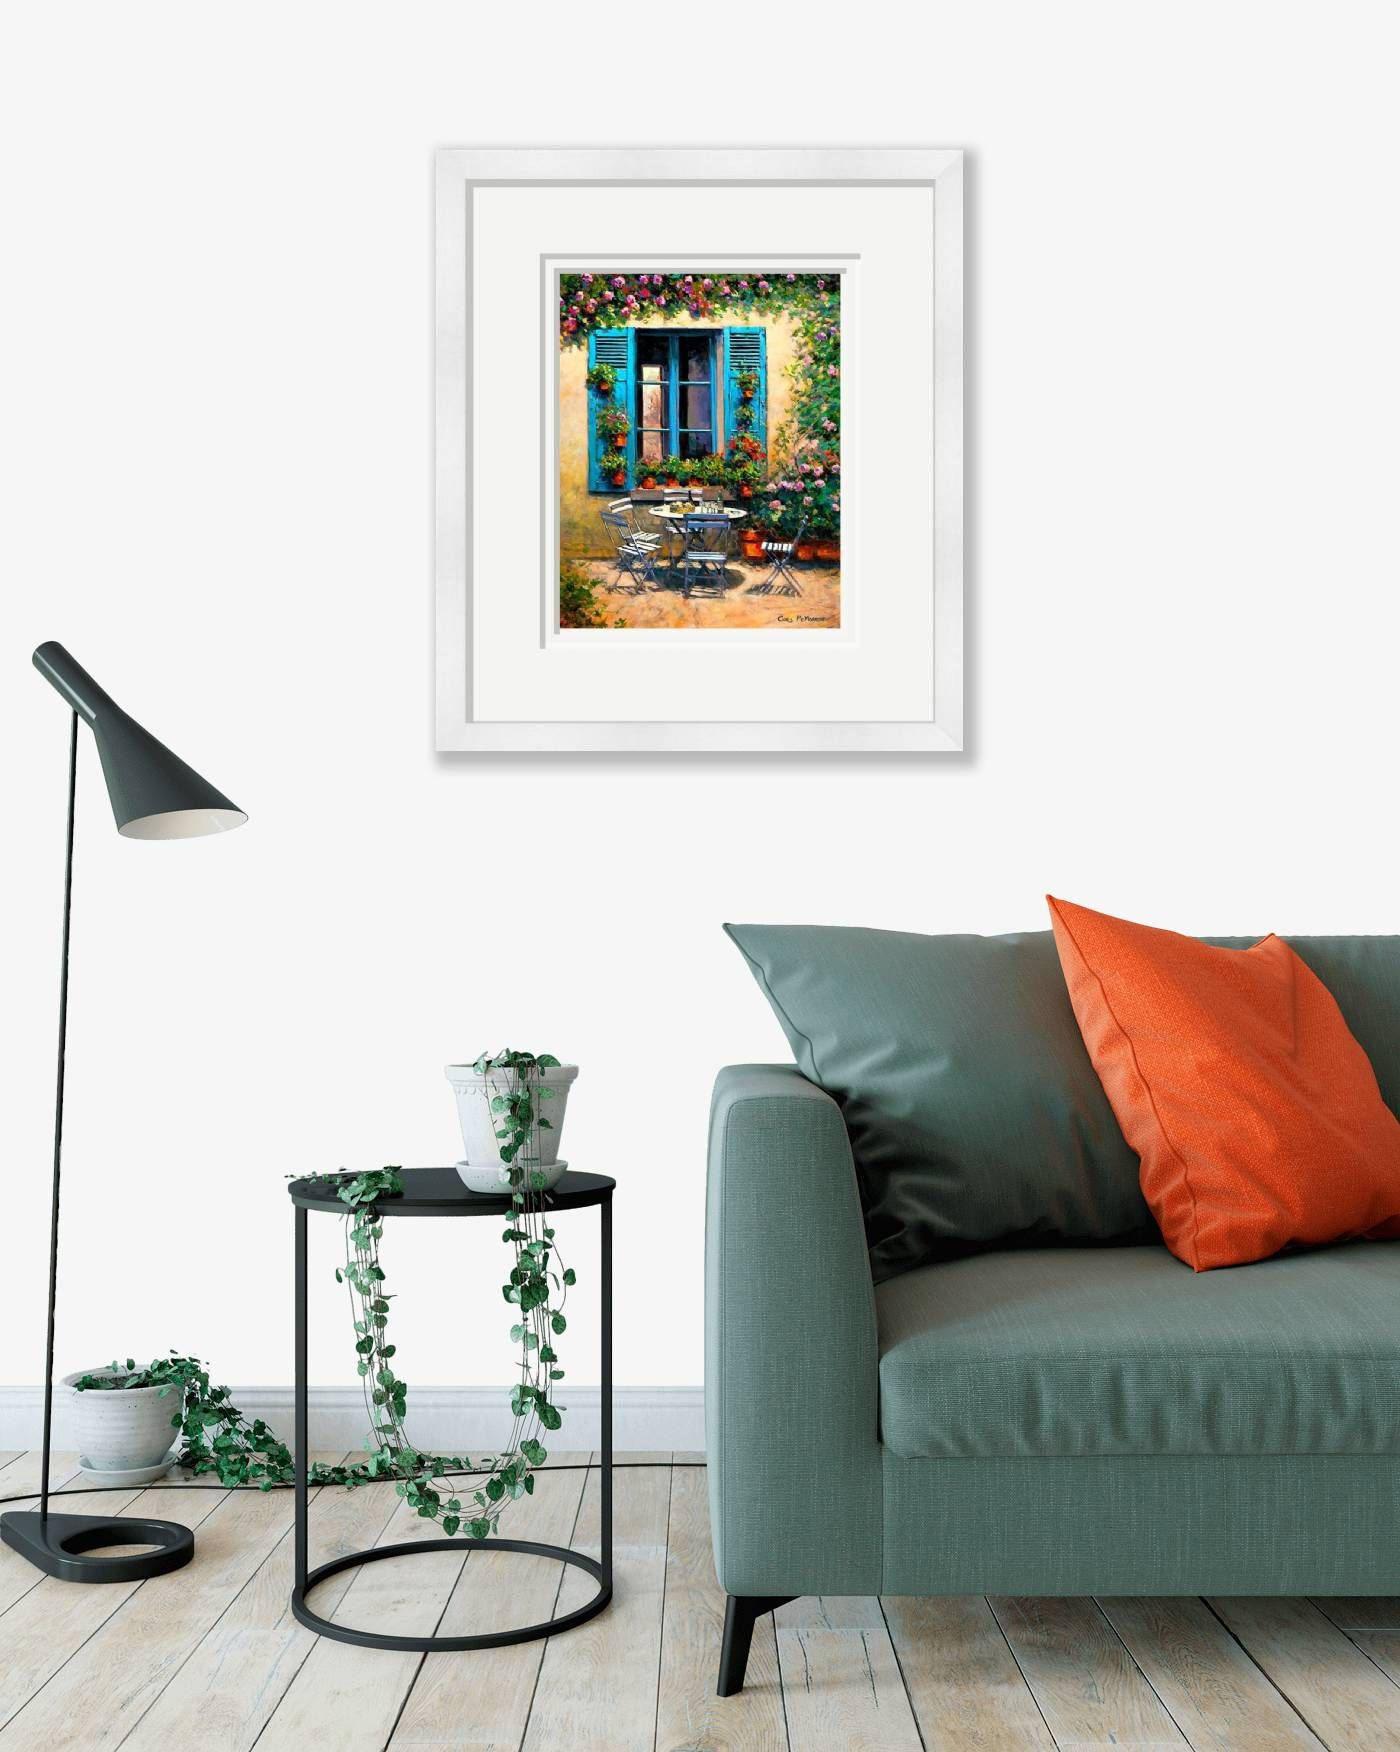 Large framed - The House with the Blue Shutters - 548 by Chris McMorrow